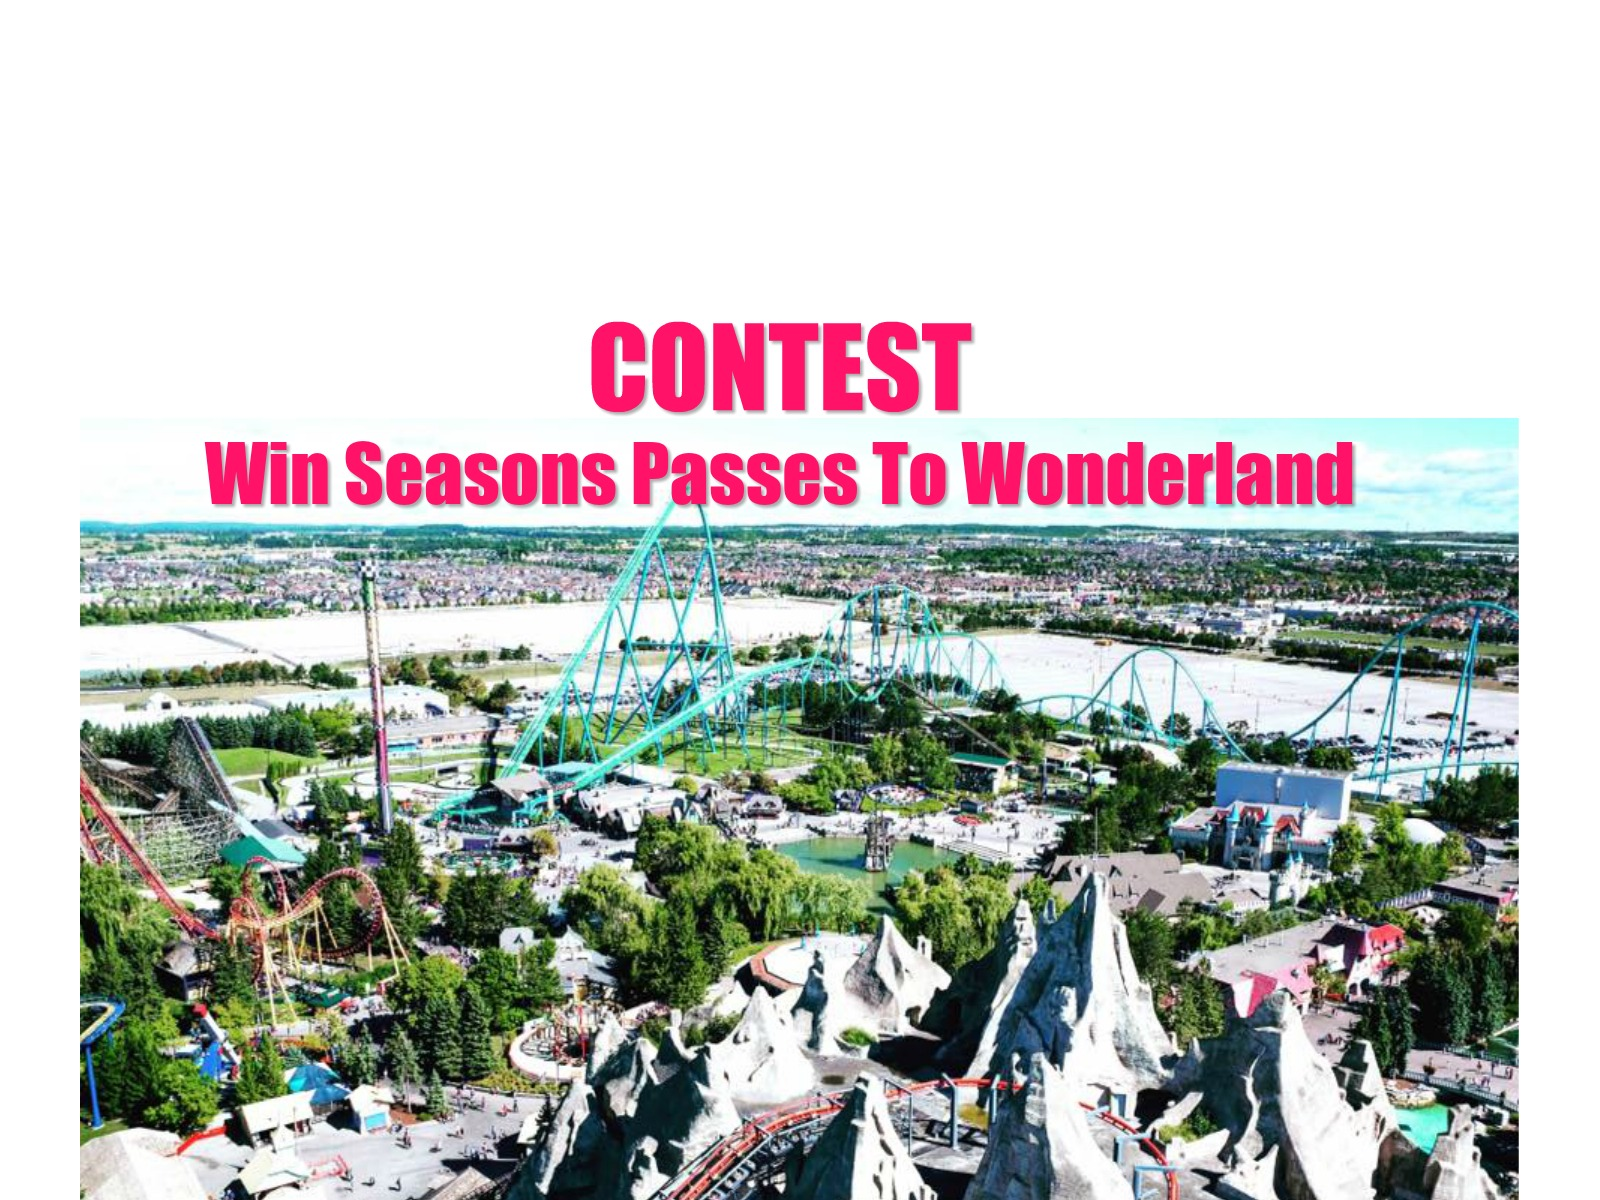 CONTEST: Win Wonderland Seasons Passes